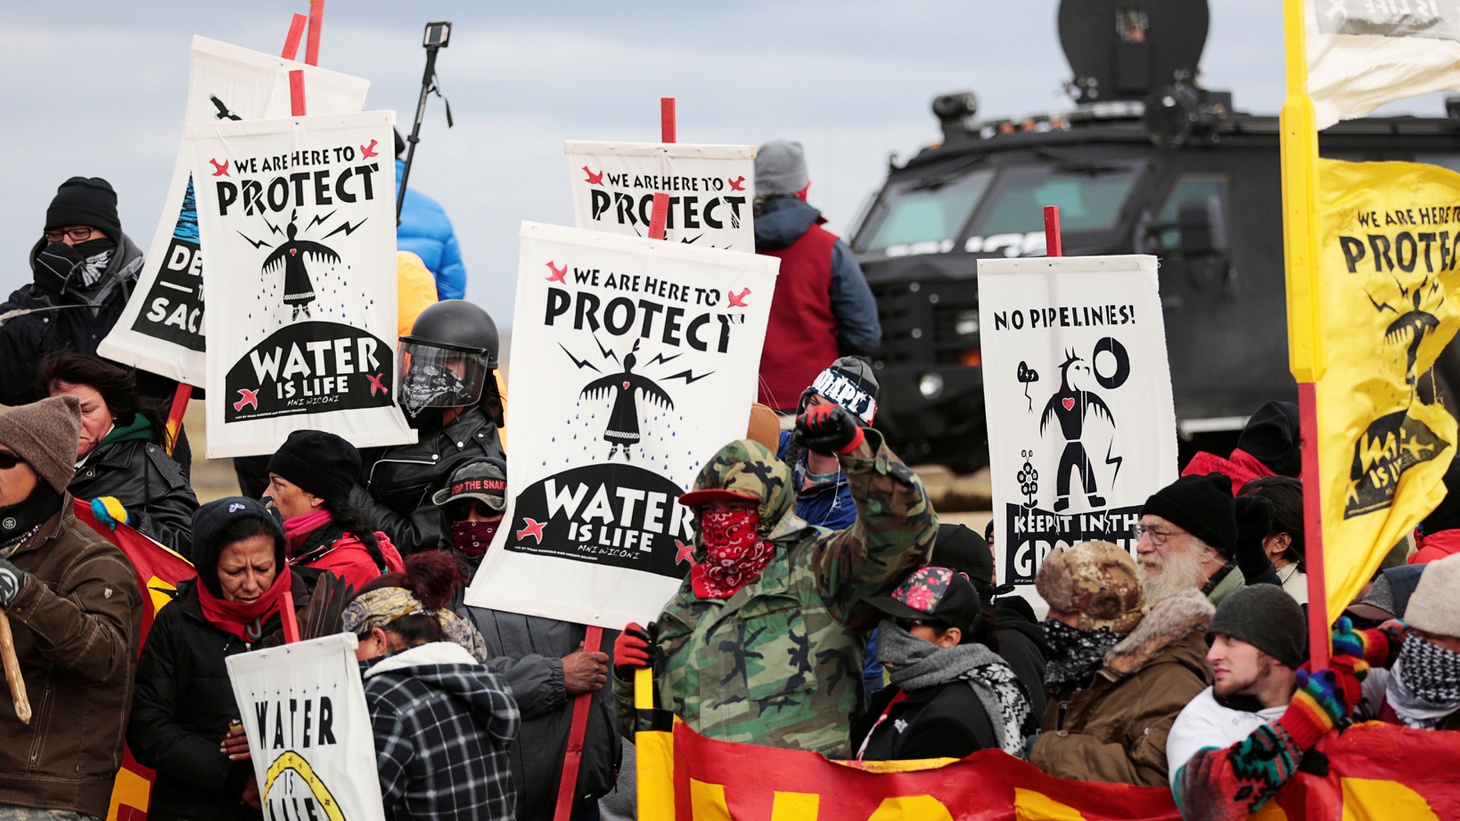 Native Americans and supporters from around the world are digging in against an  oil pipeline  near the Missouri River — despite being struck with batons, sprayed with Mace and charged with crimes. After the protesters lost a battle in court, the Obama Administration asked Energy Transfer, a Fortune 500 Company, to defer construction.